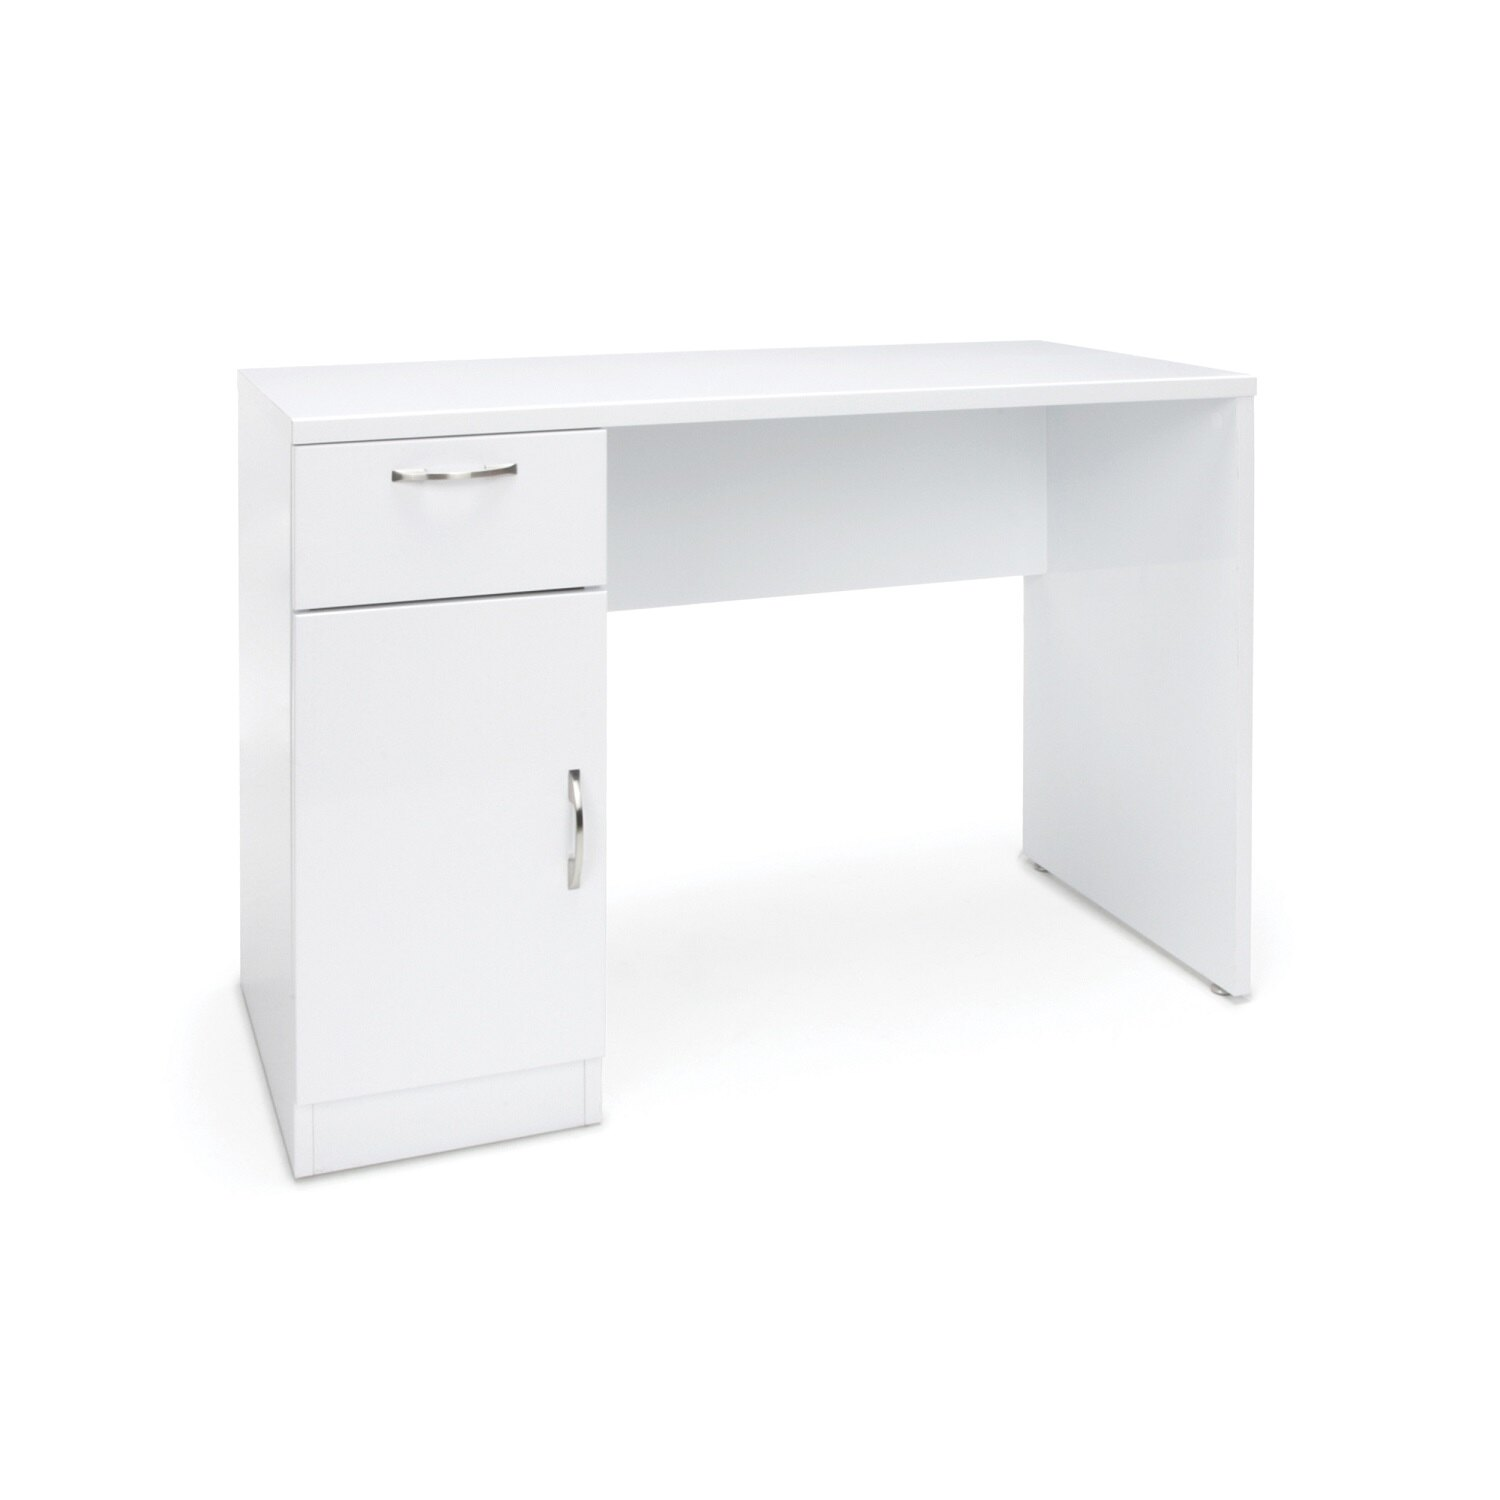 Essentials By Ofm Ess 1015 Single Pedestal Solid Panel Office Desk With Drawer And Cabinet